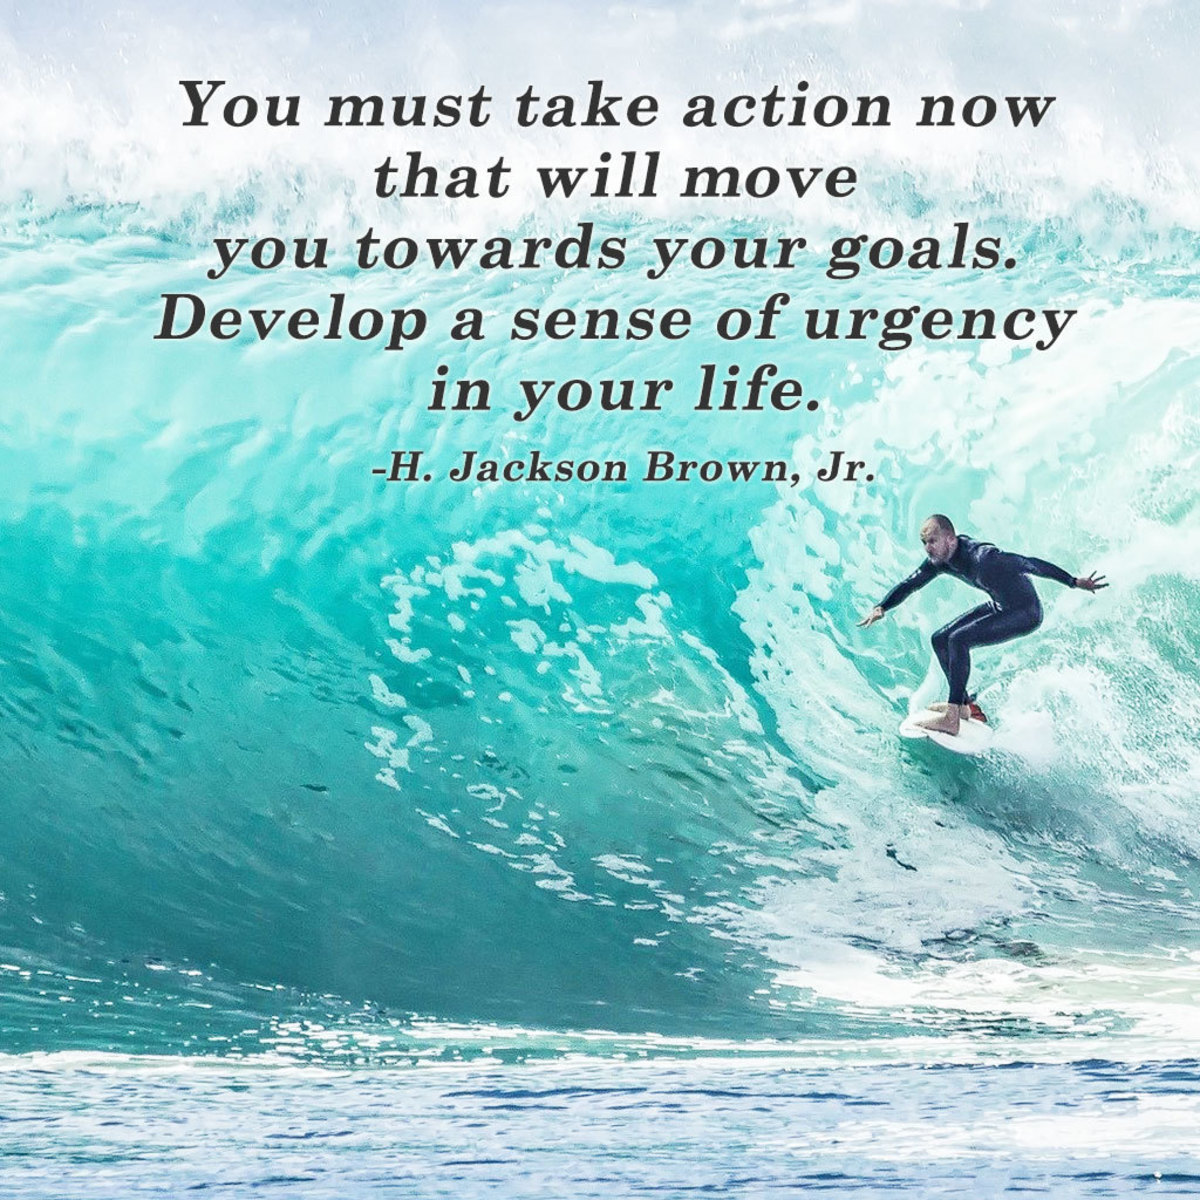 """""""You must take action now that will move you towards your goals. Develop a sense of urgency in your life."""" ― H. Jackson Brown, Jr."""